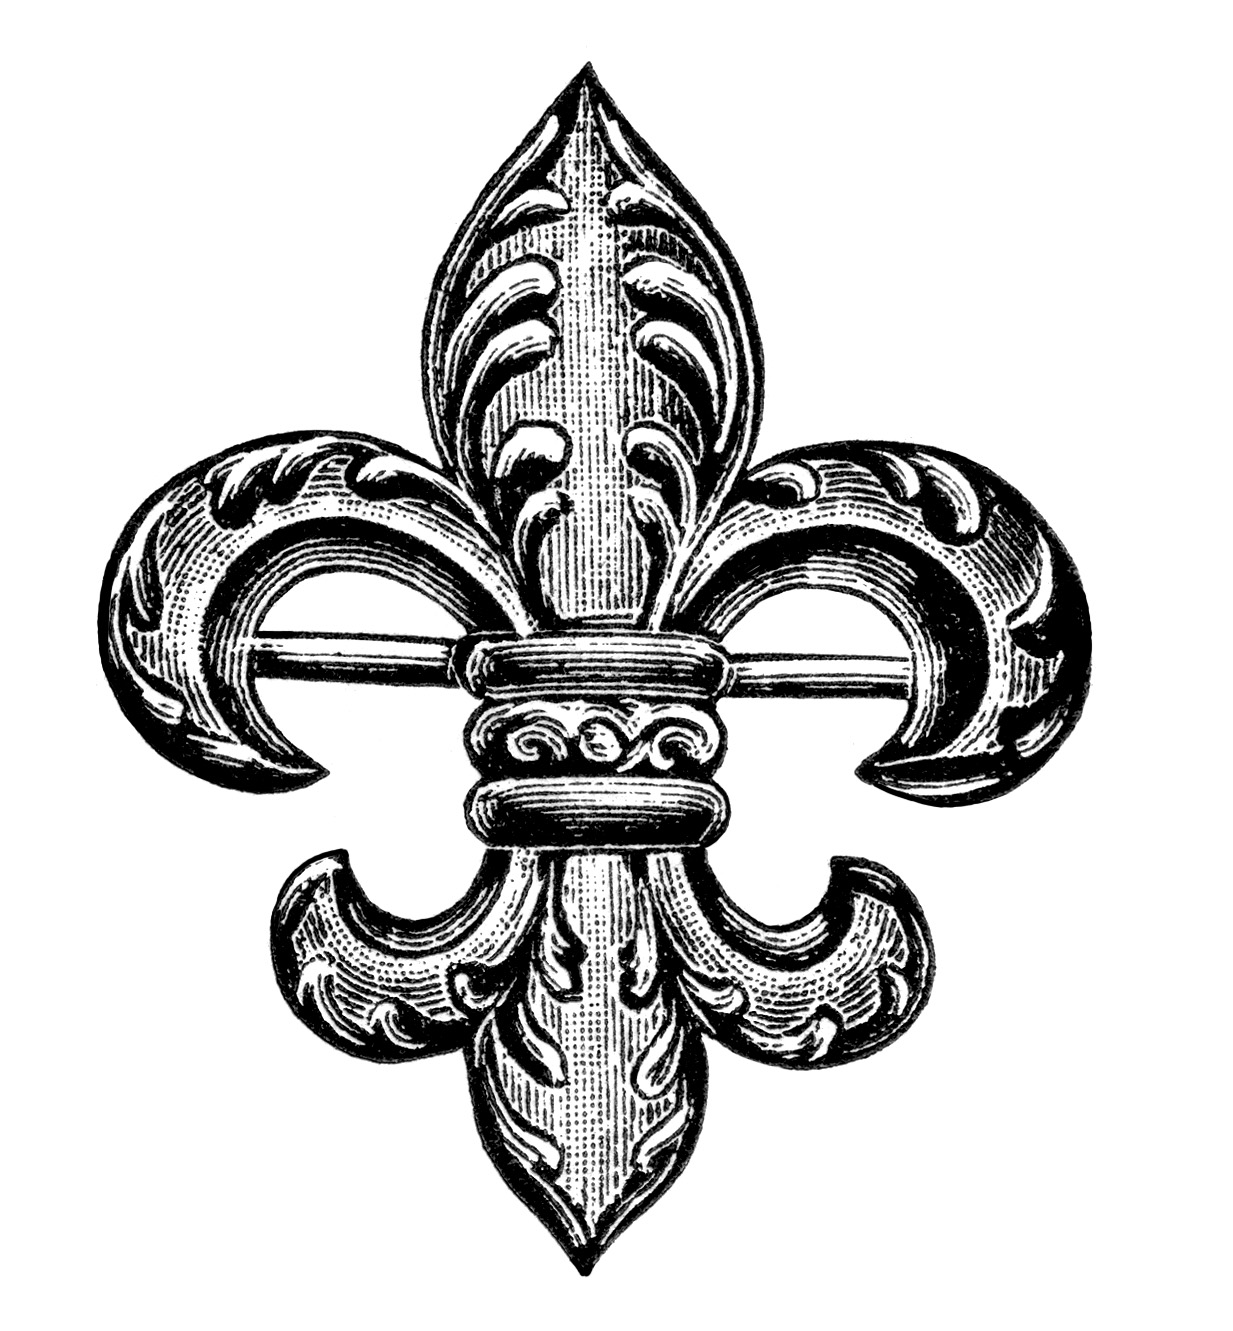 Free vintage image fleur de lis brooch old design shop blog clip art ... banner freeuse stock